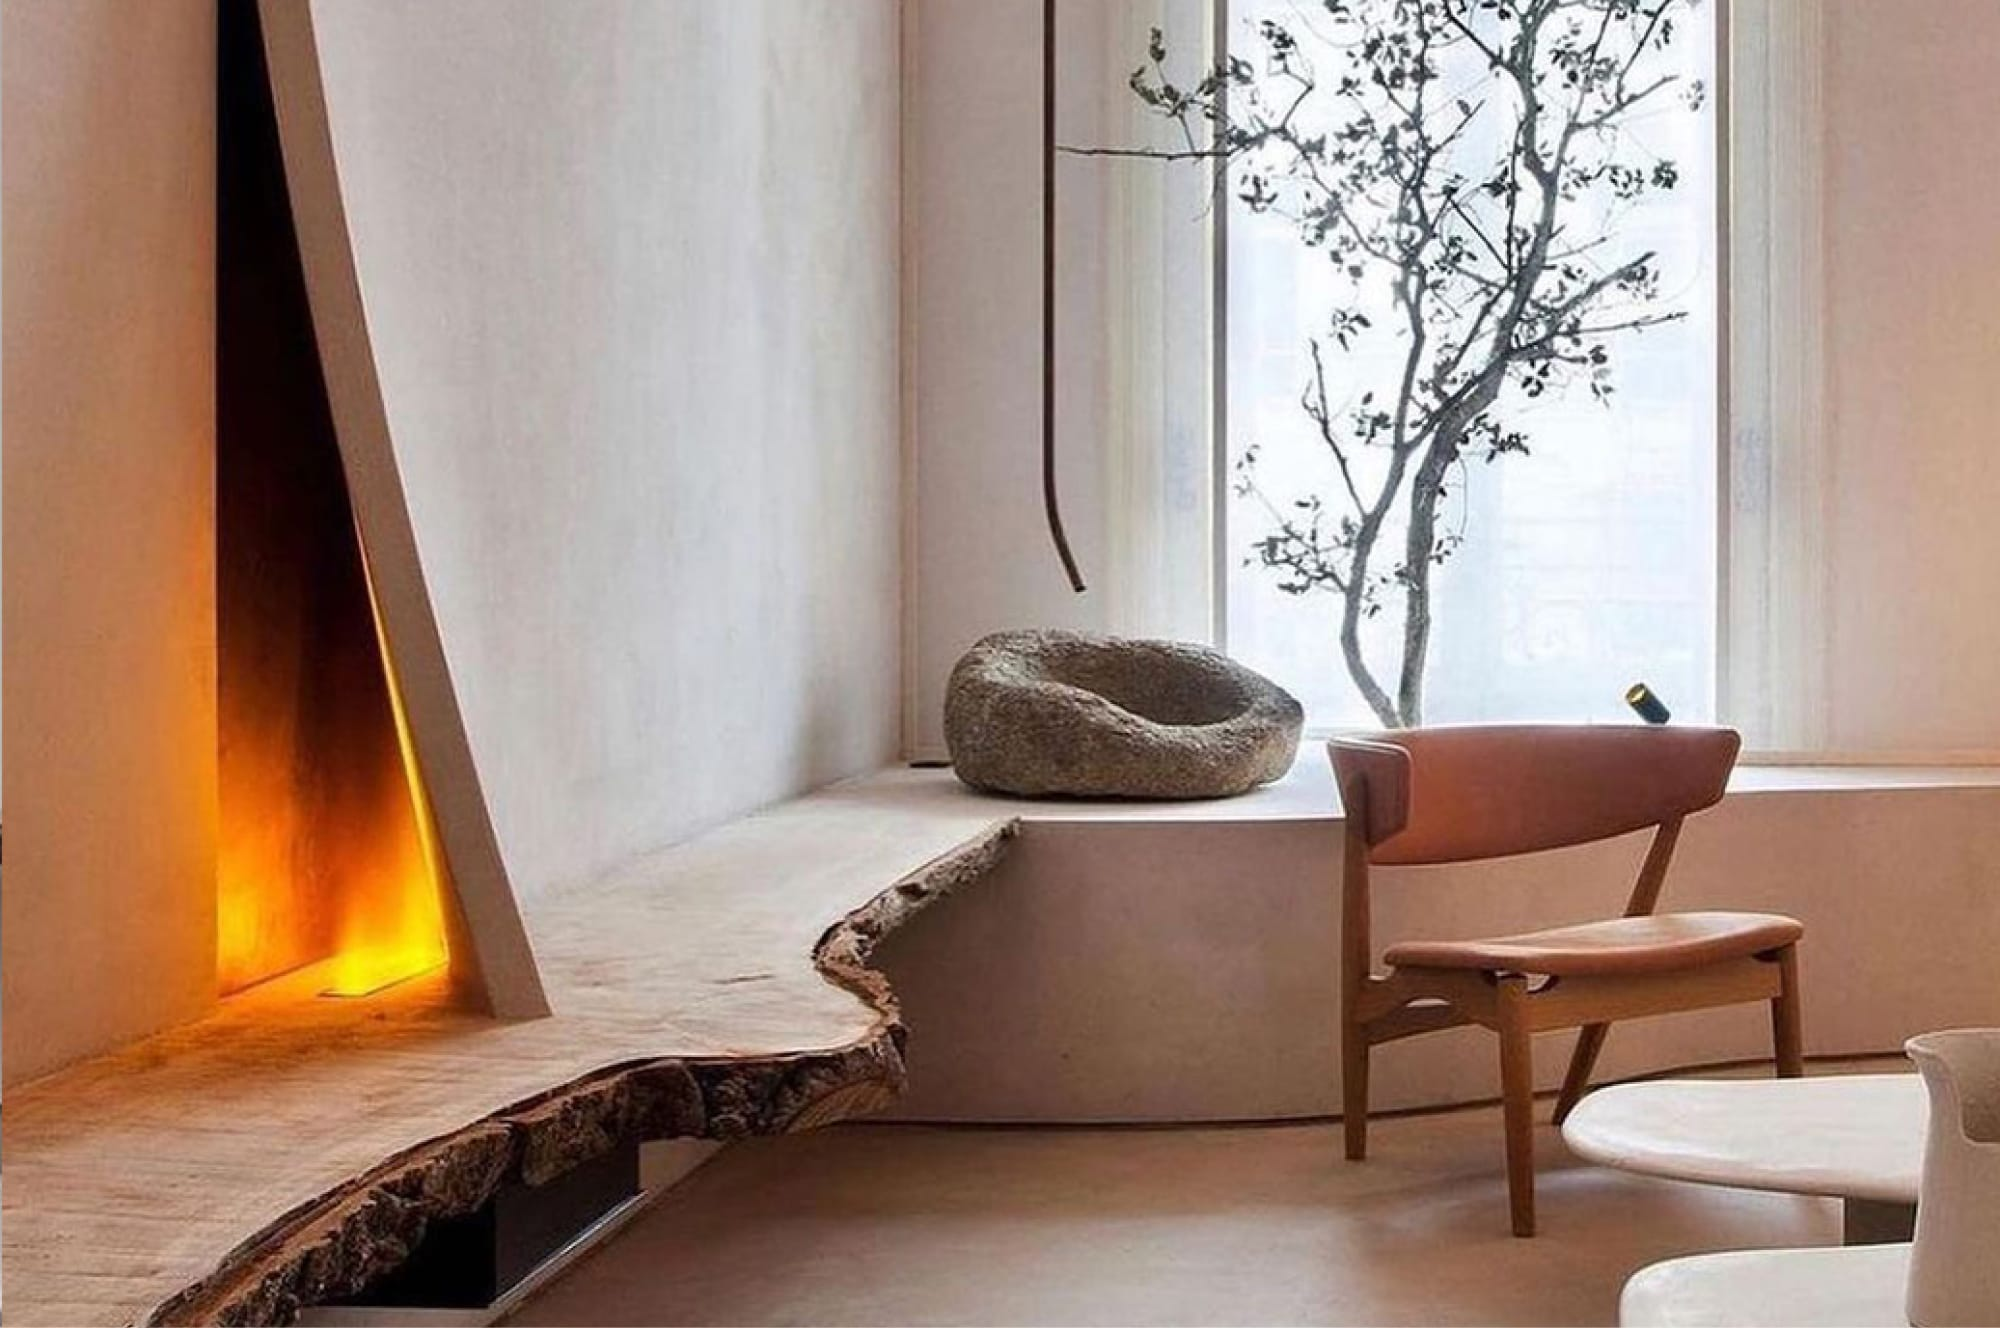 A minimal fireplace inspired by nature